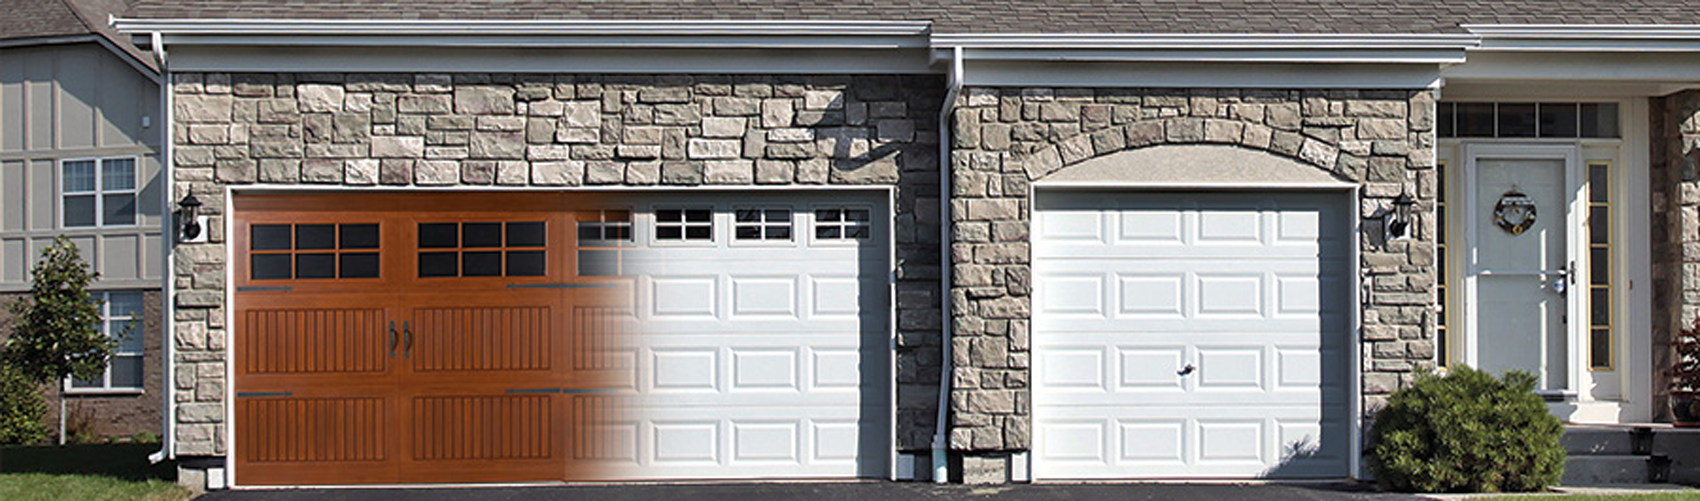 garage doors houstonOverhead Door Company of Houston  Houston garage door sales